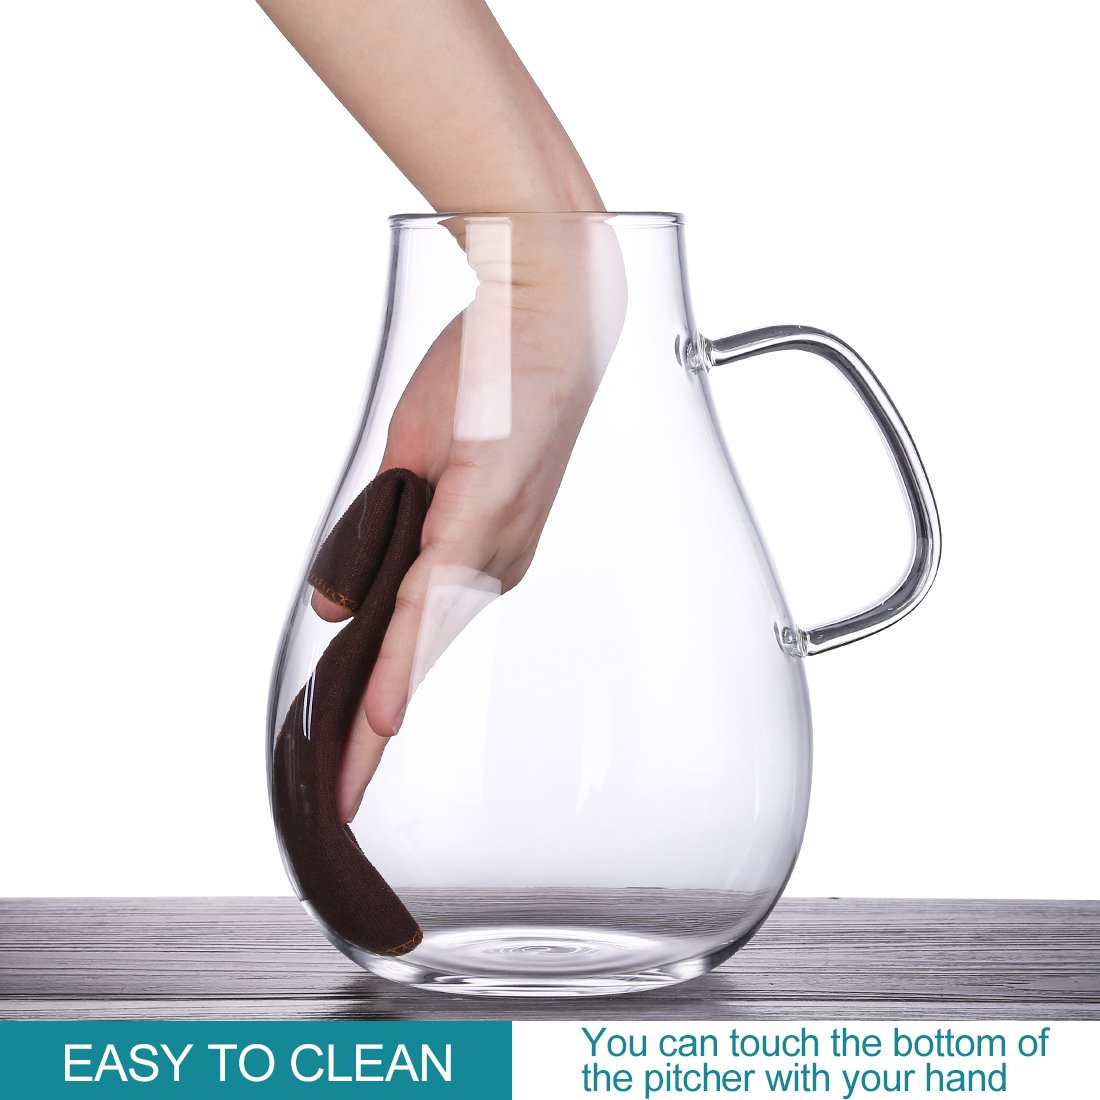 ONEISALL 85 Ounces Large Heat Resistant Glass Beverage Pitcher with Stainless Steel Lid, Borosilicate Water Carafe with Spout and Handle, Perfect for Homemade Juice & Iced Tea by Weisier (Image #5)